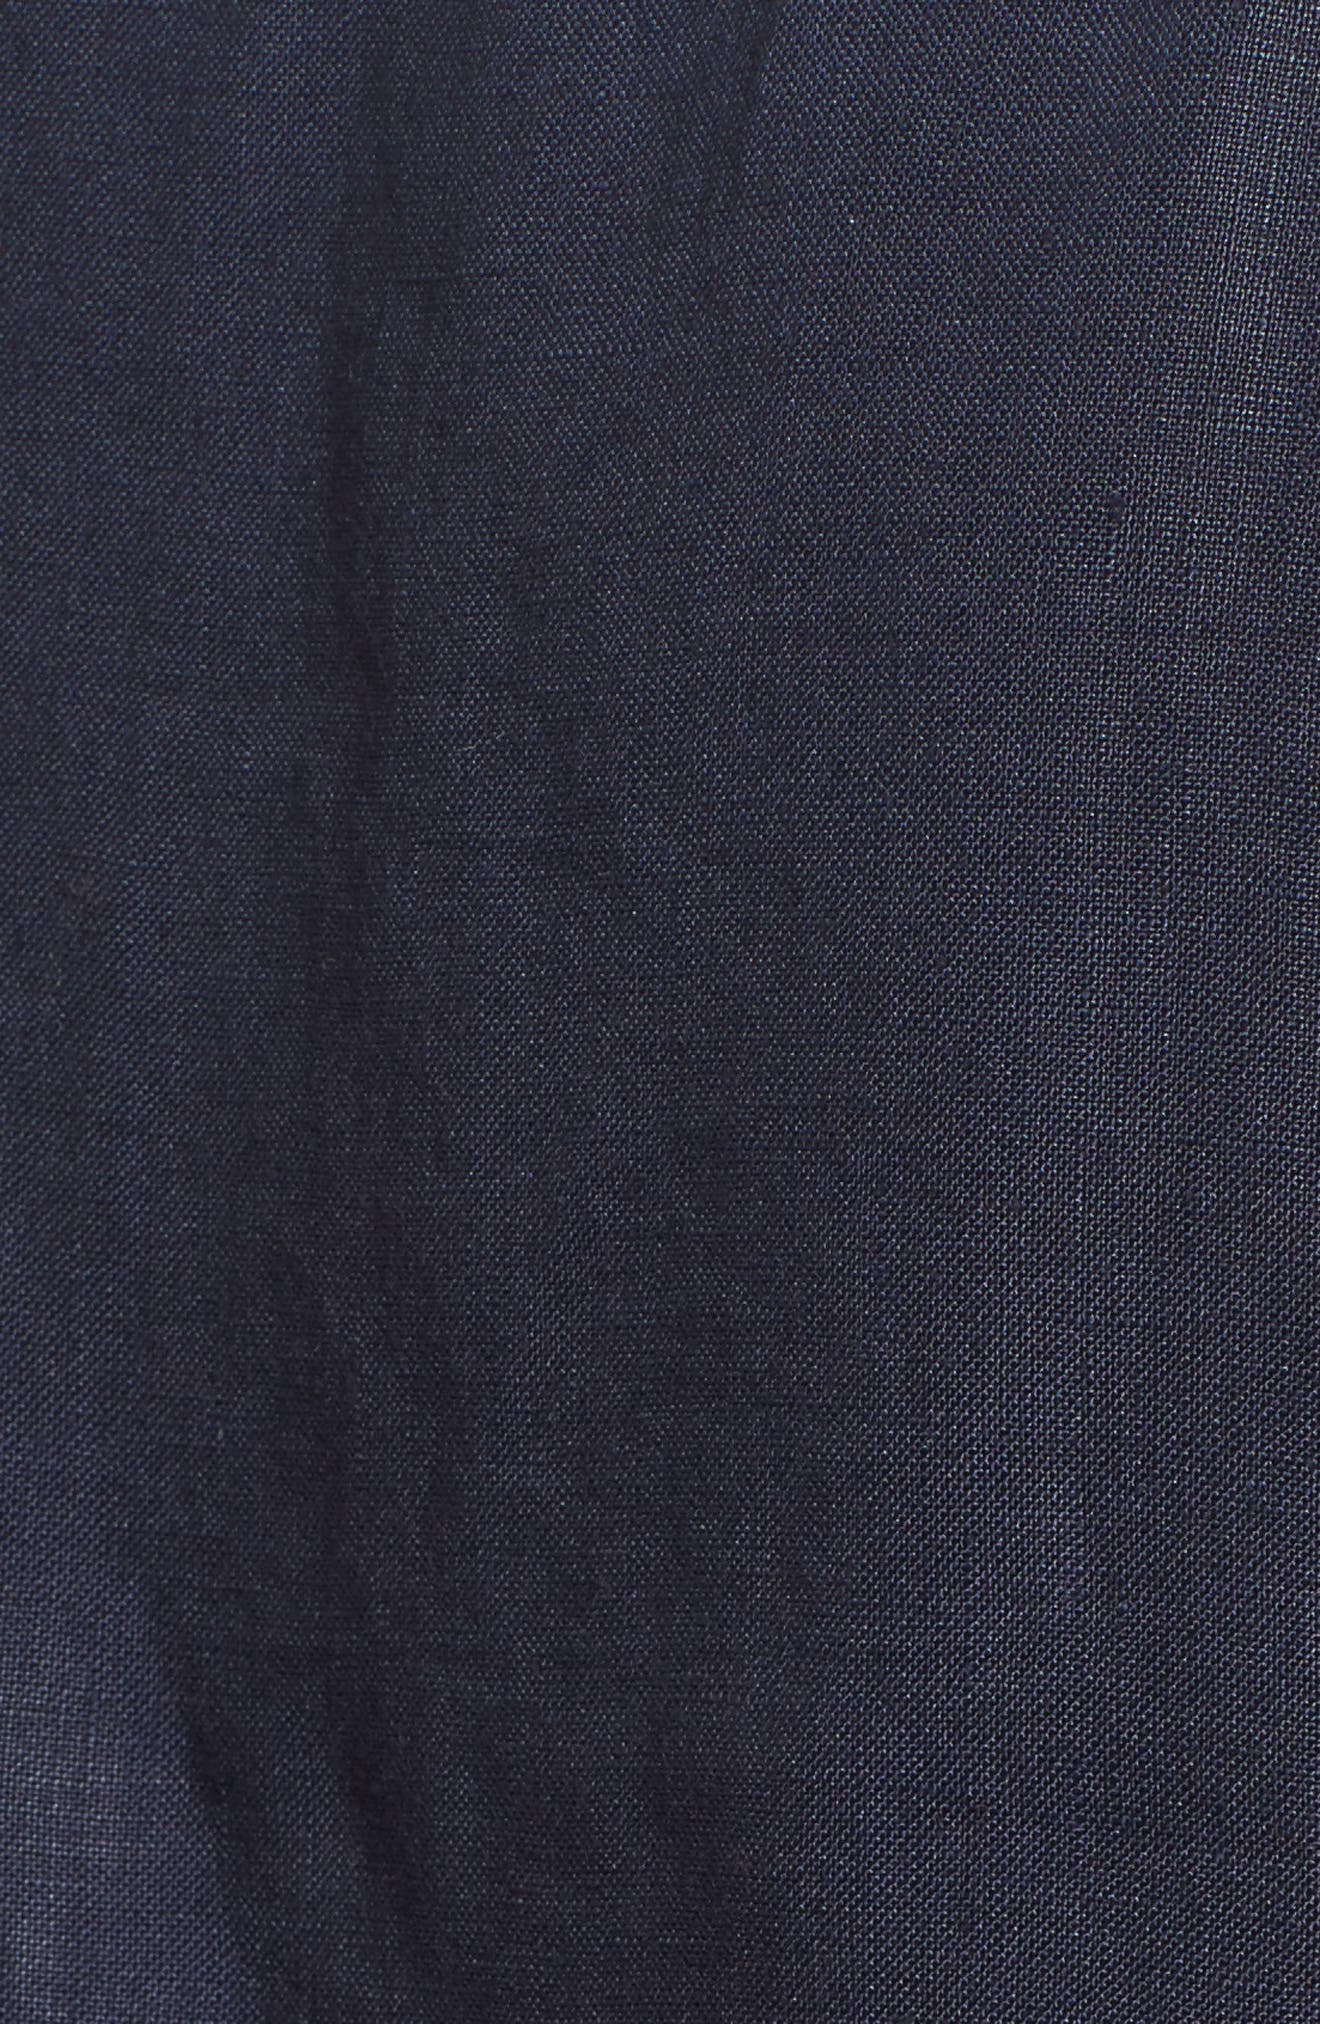 Ruched Sleeve Linen Pullover,                             Alternate thumbnail 5, color,                             Navy Peacoat